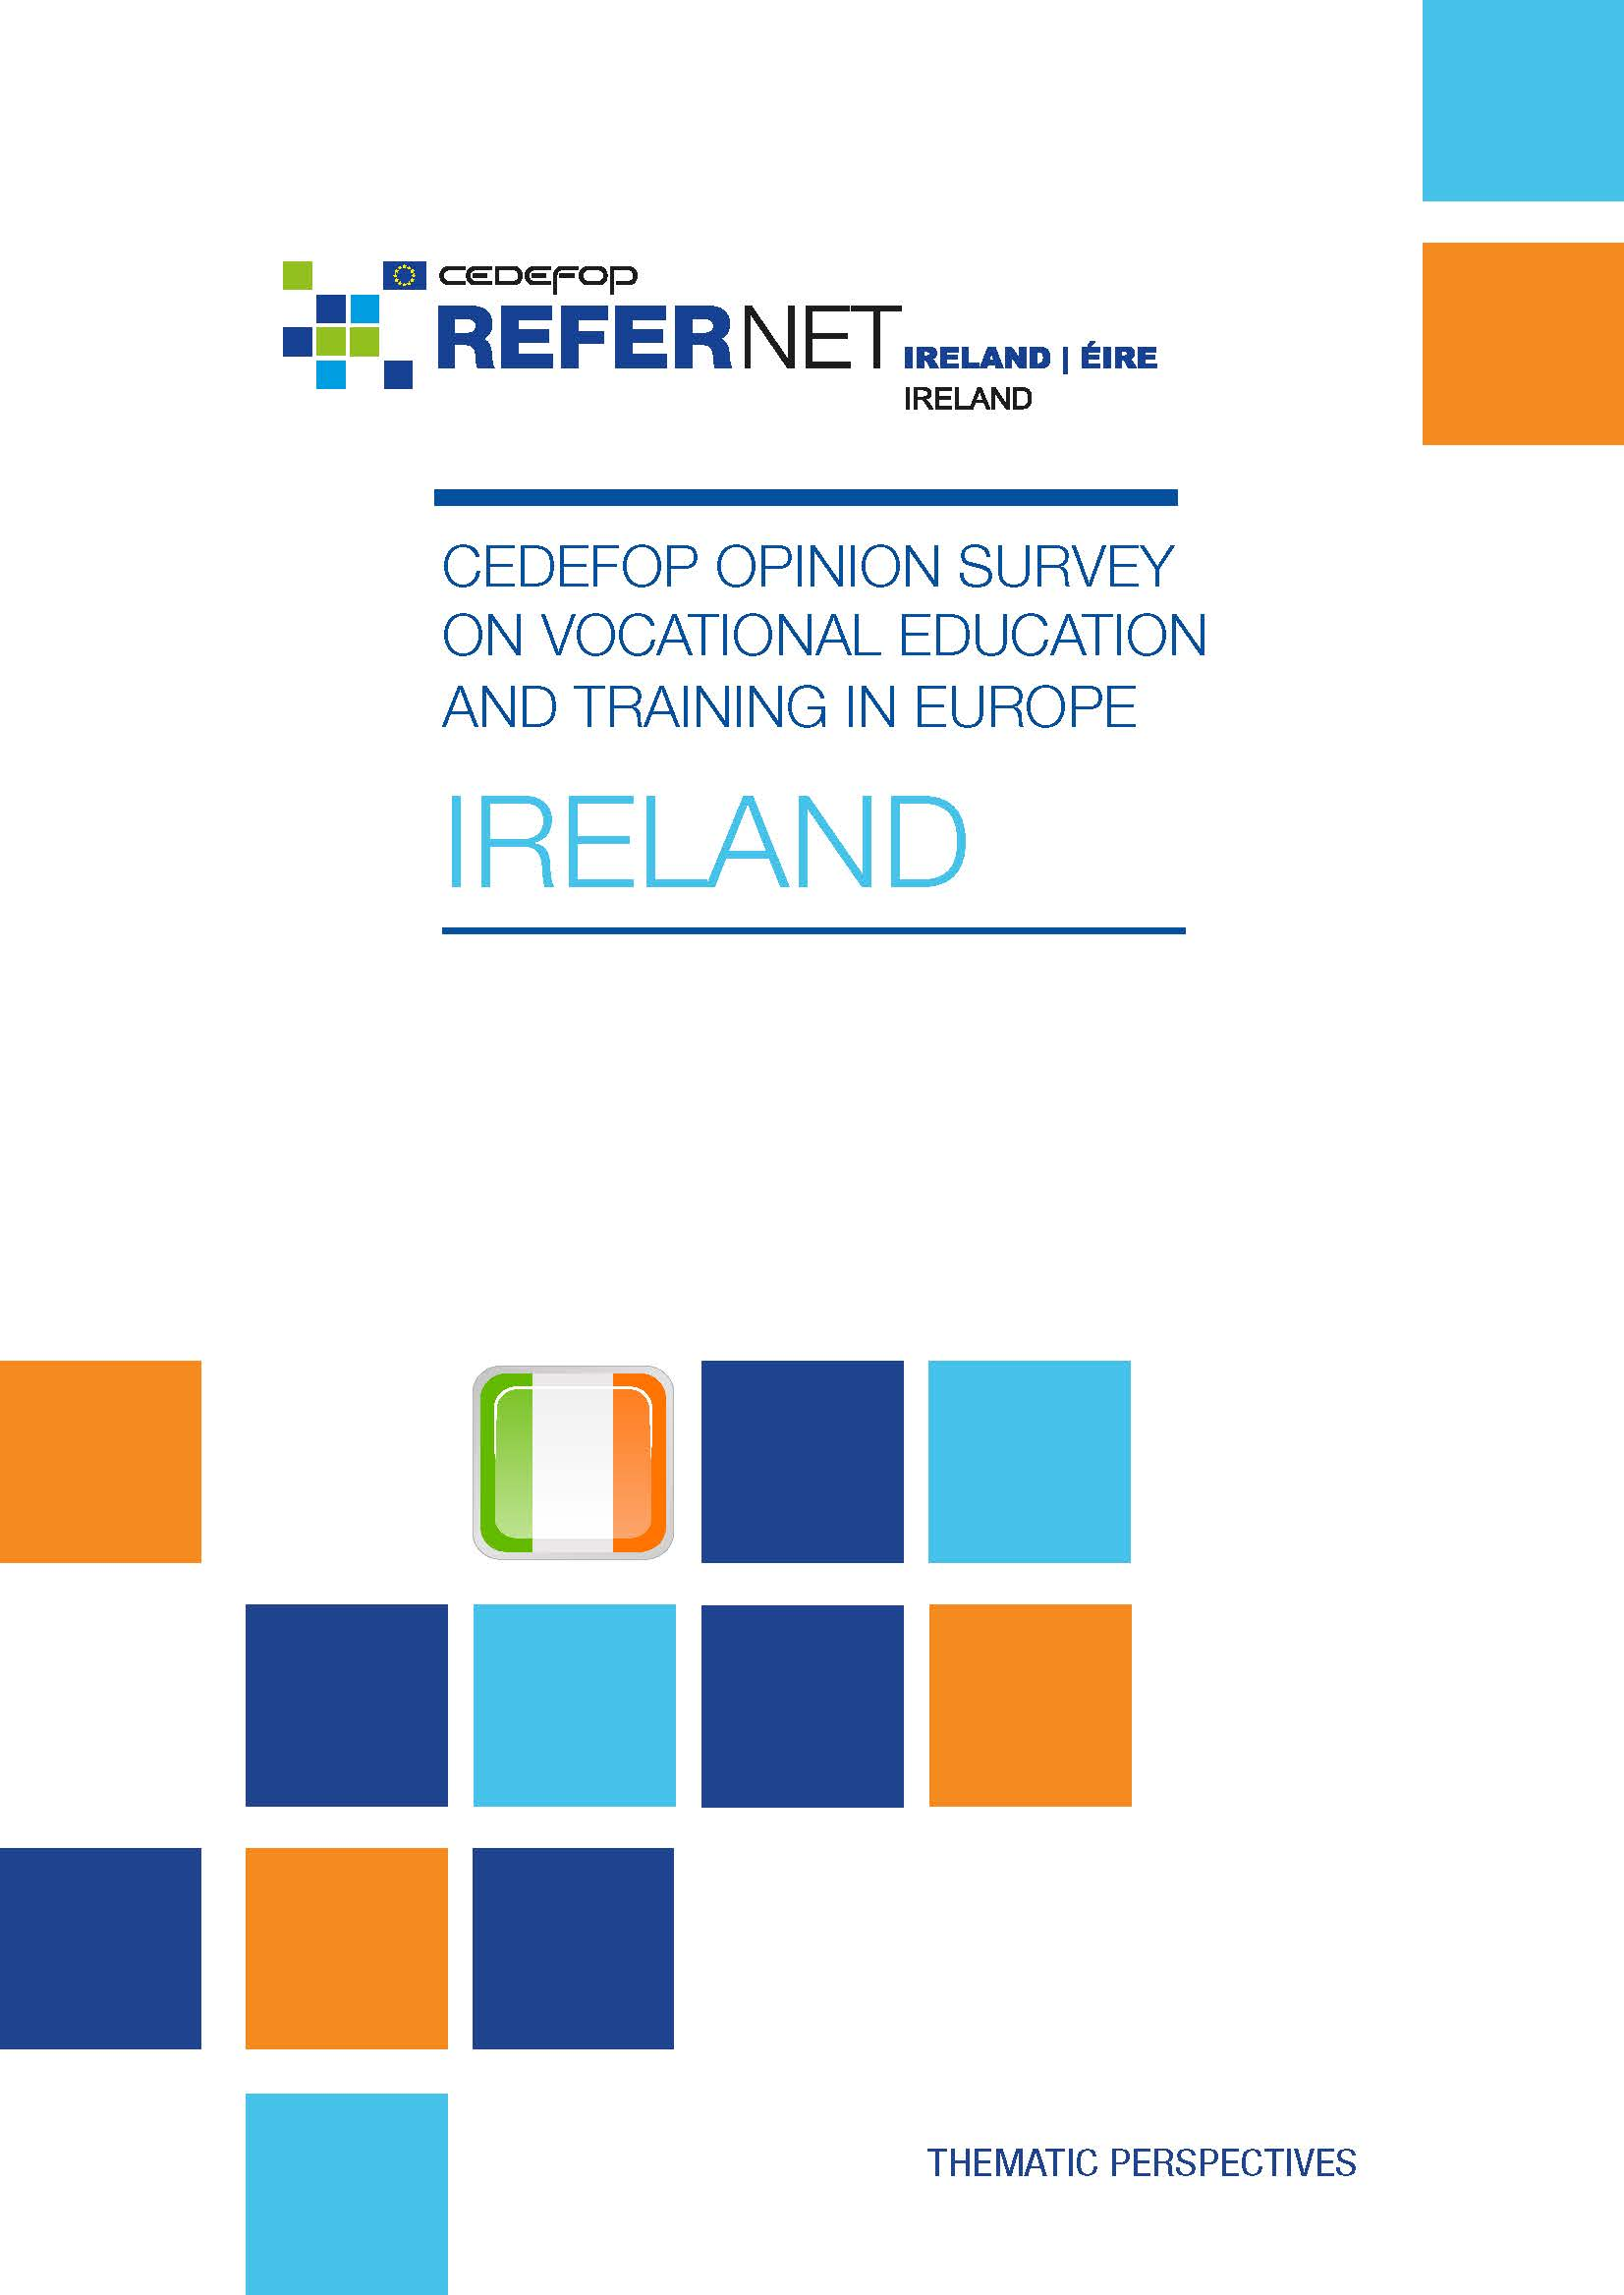 http://www.cedefop.europa.eu/en/publications-and-resources/country-reports/cedefop-public-opinion-survey-vocational-education-and-training-europe-ireland